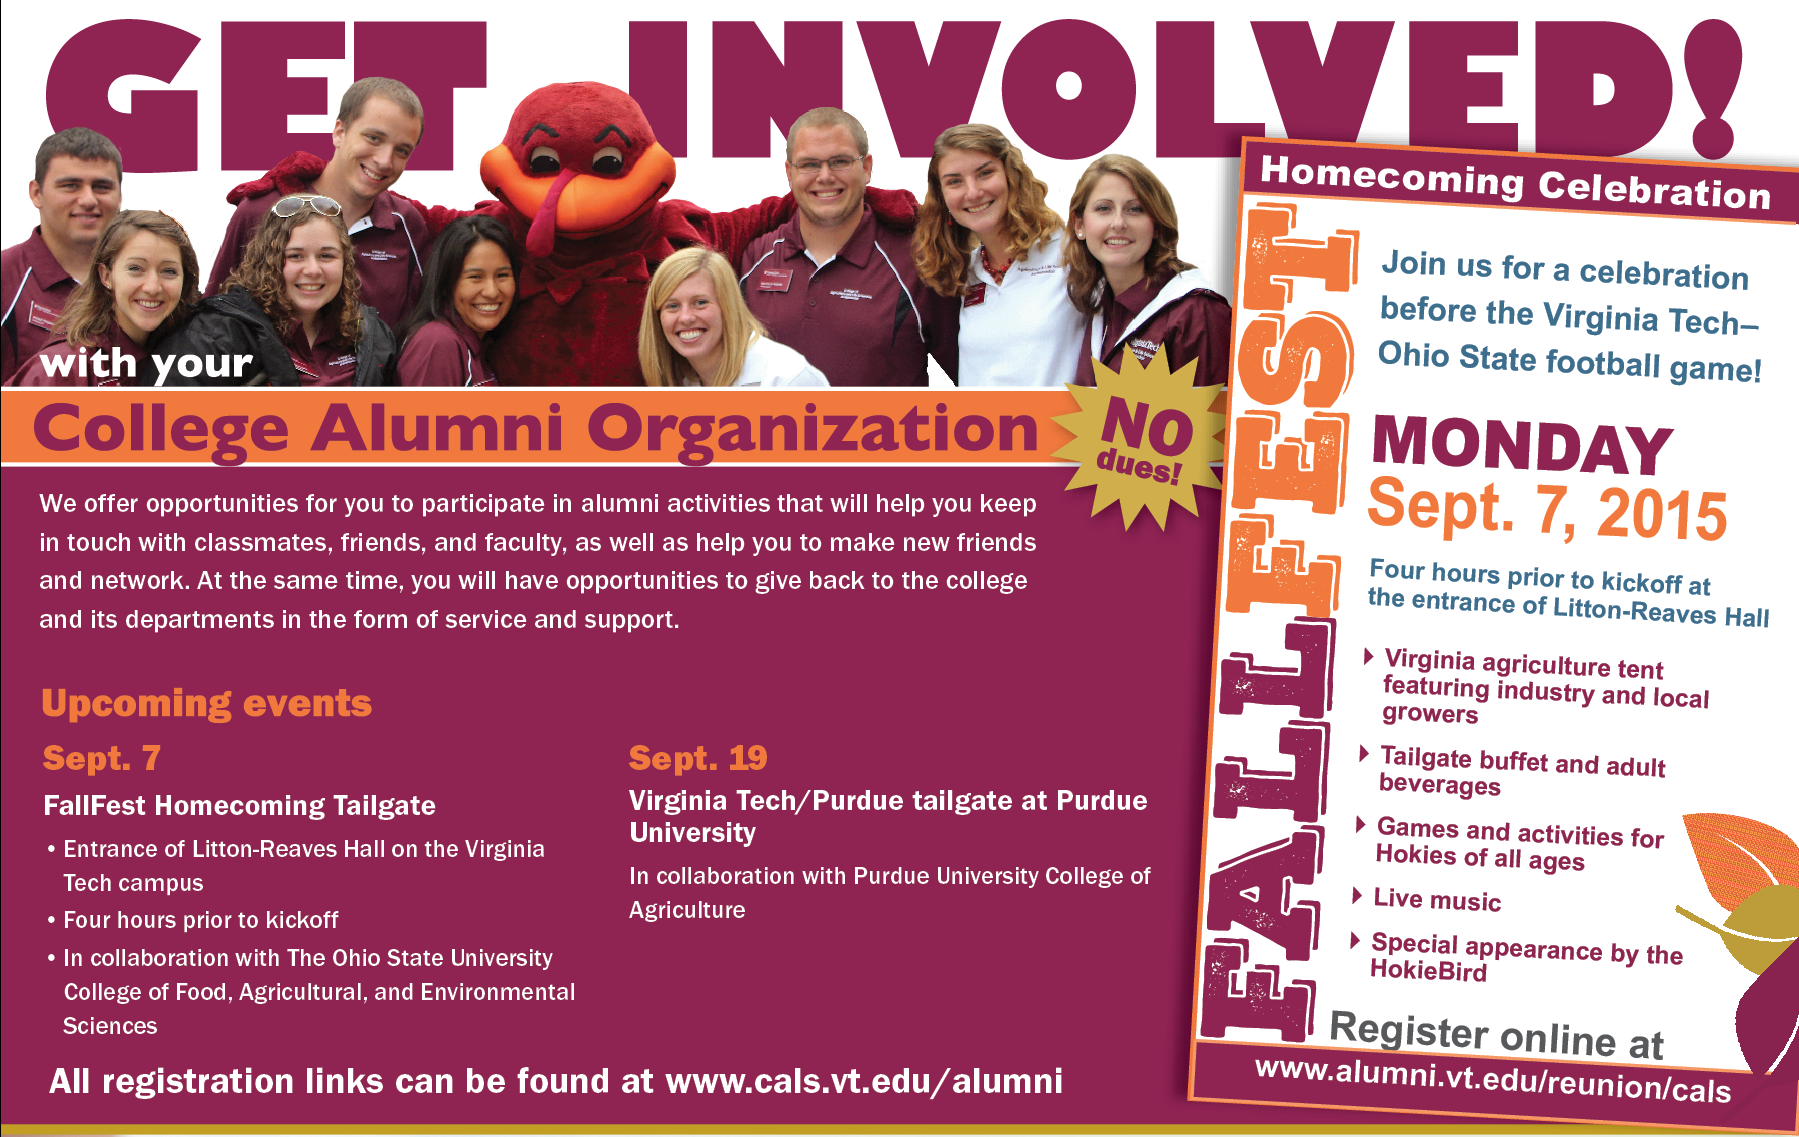 Get involved with your College Alumni Organization